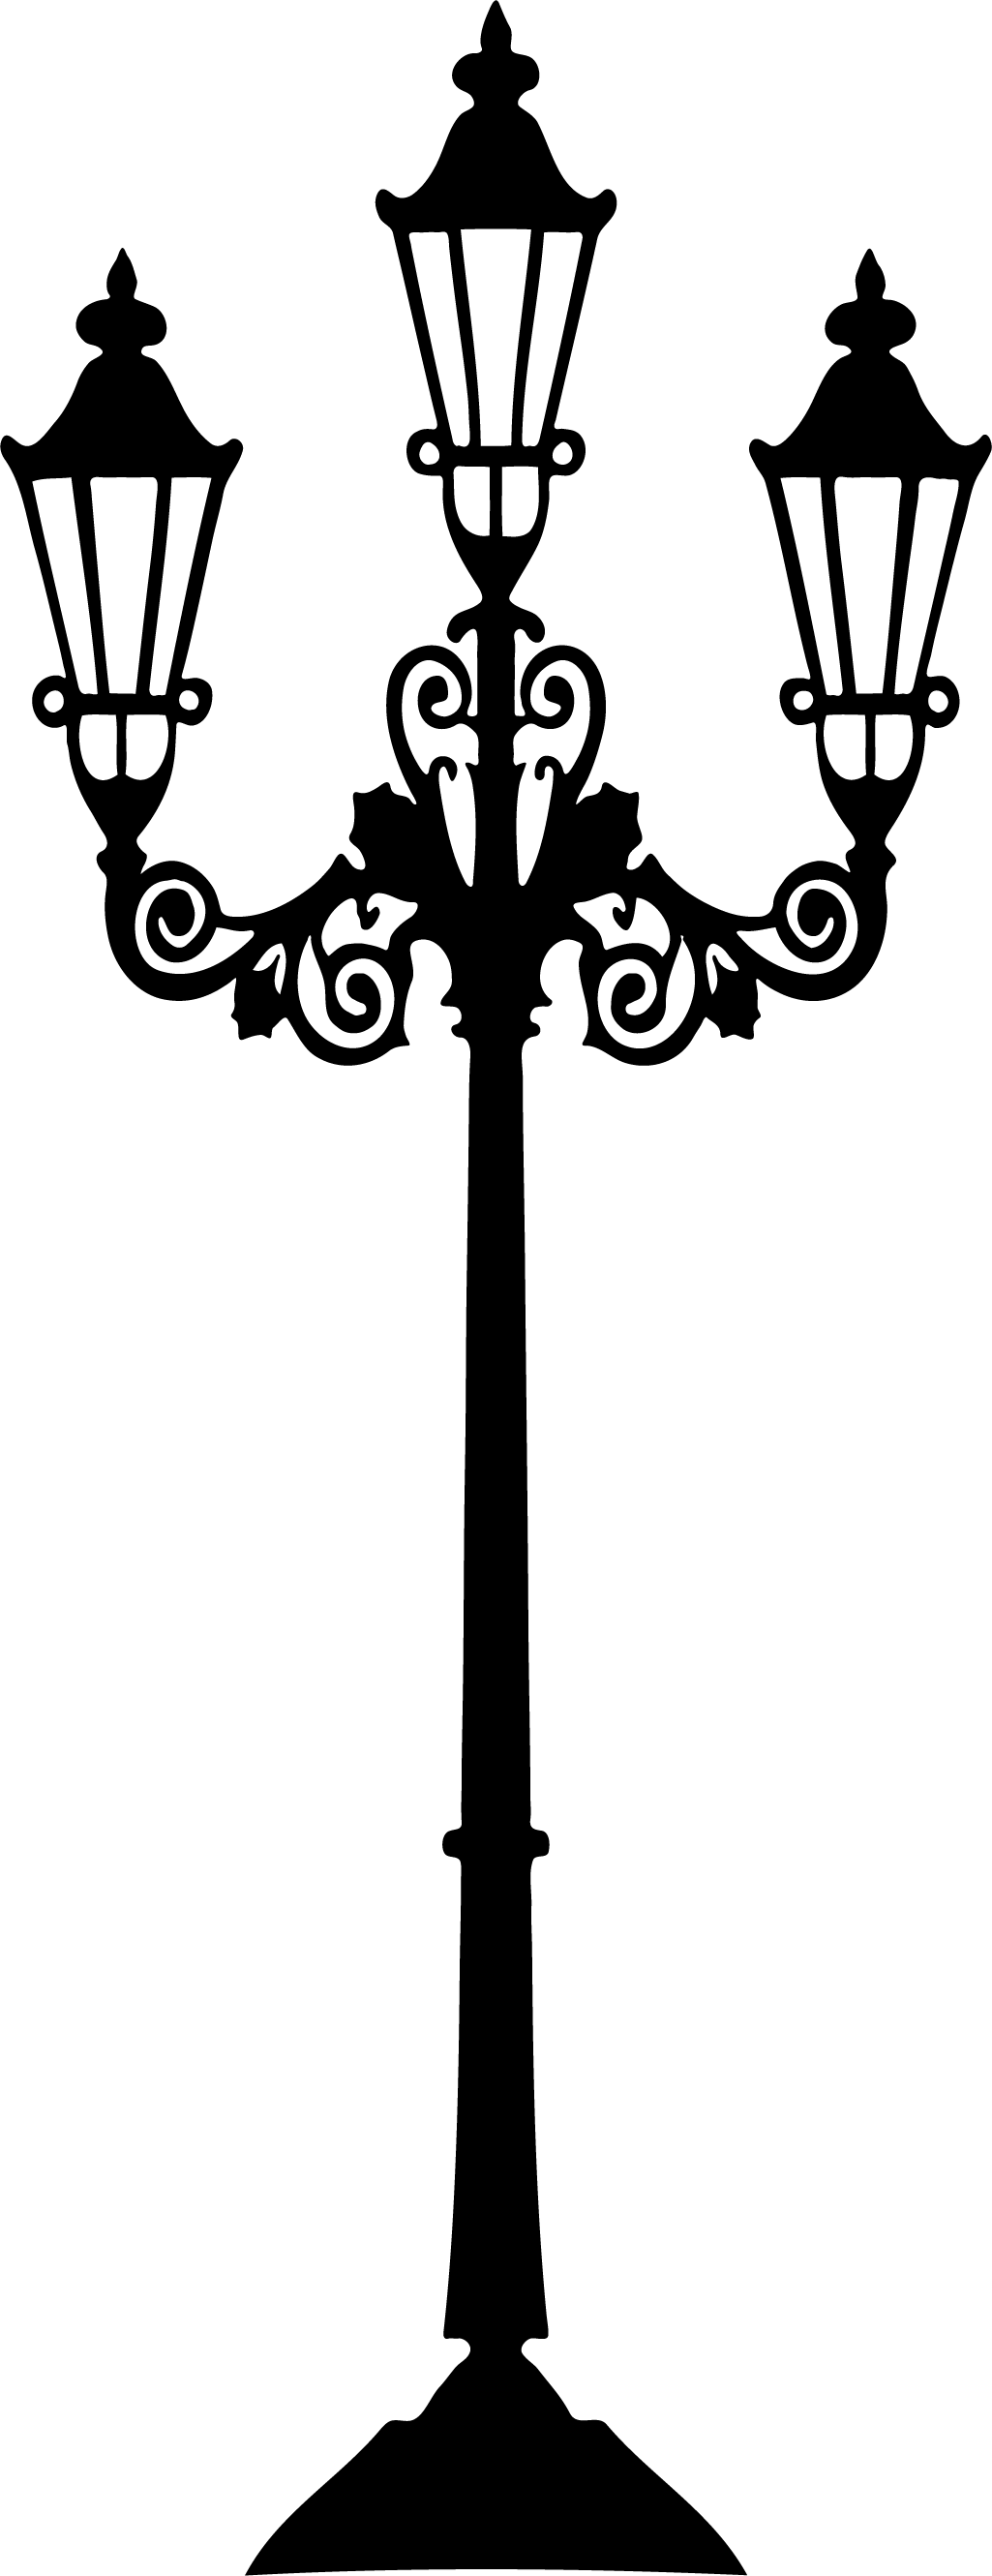 Phone clipart old style. Lamp post light png